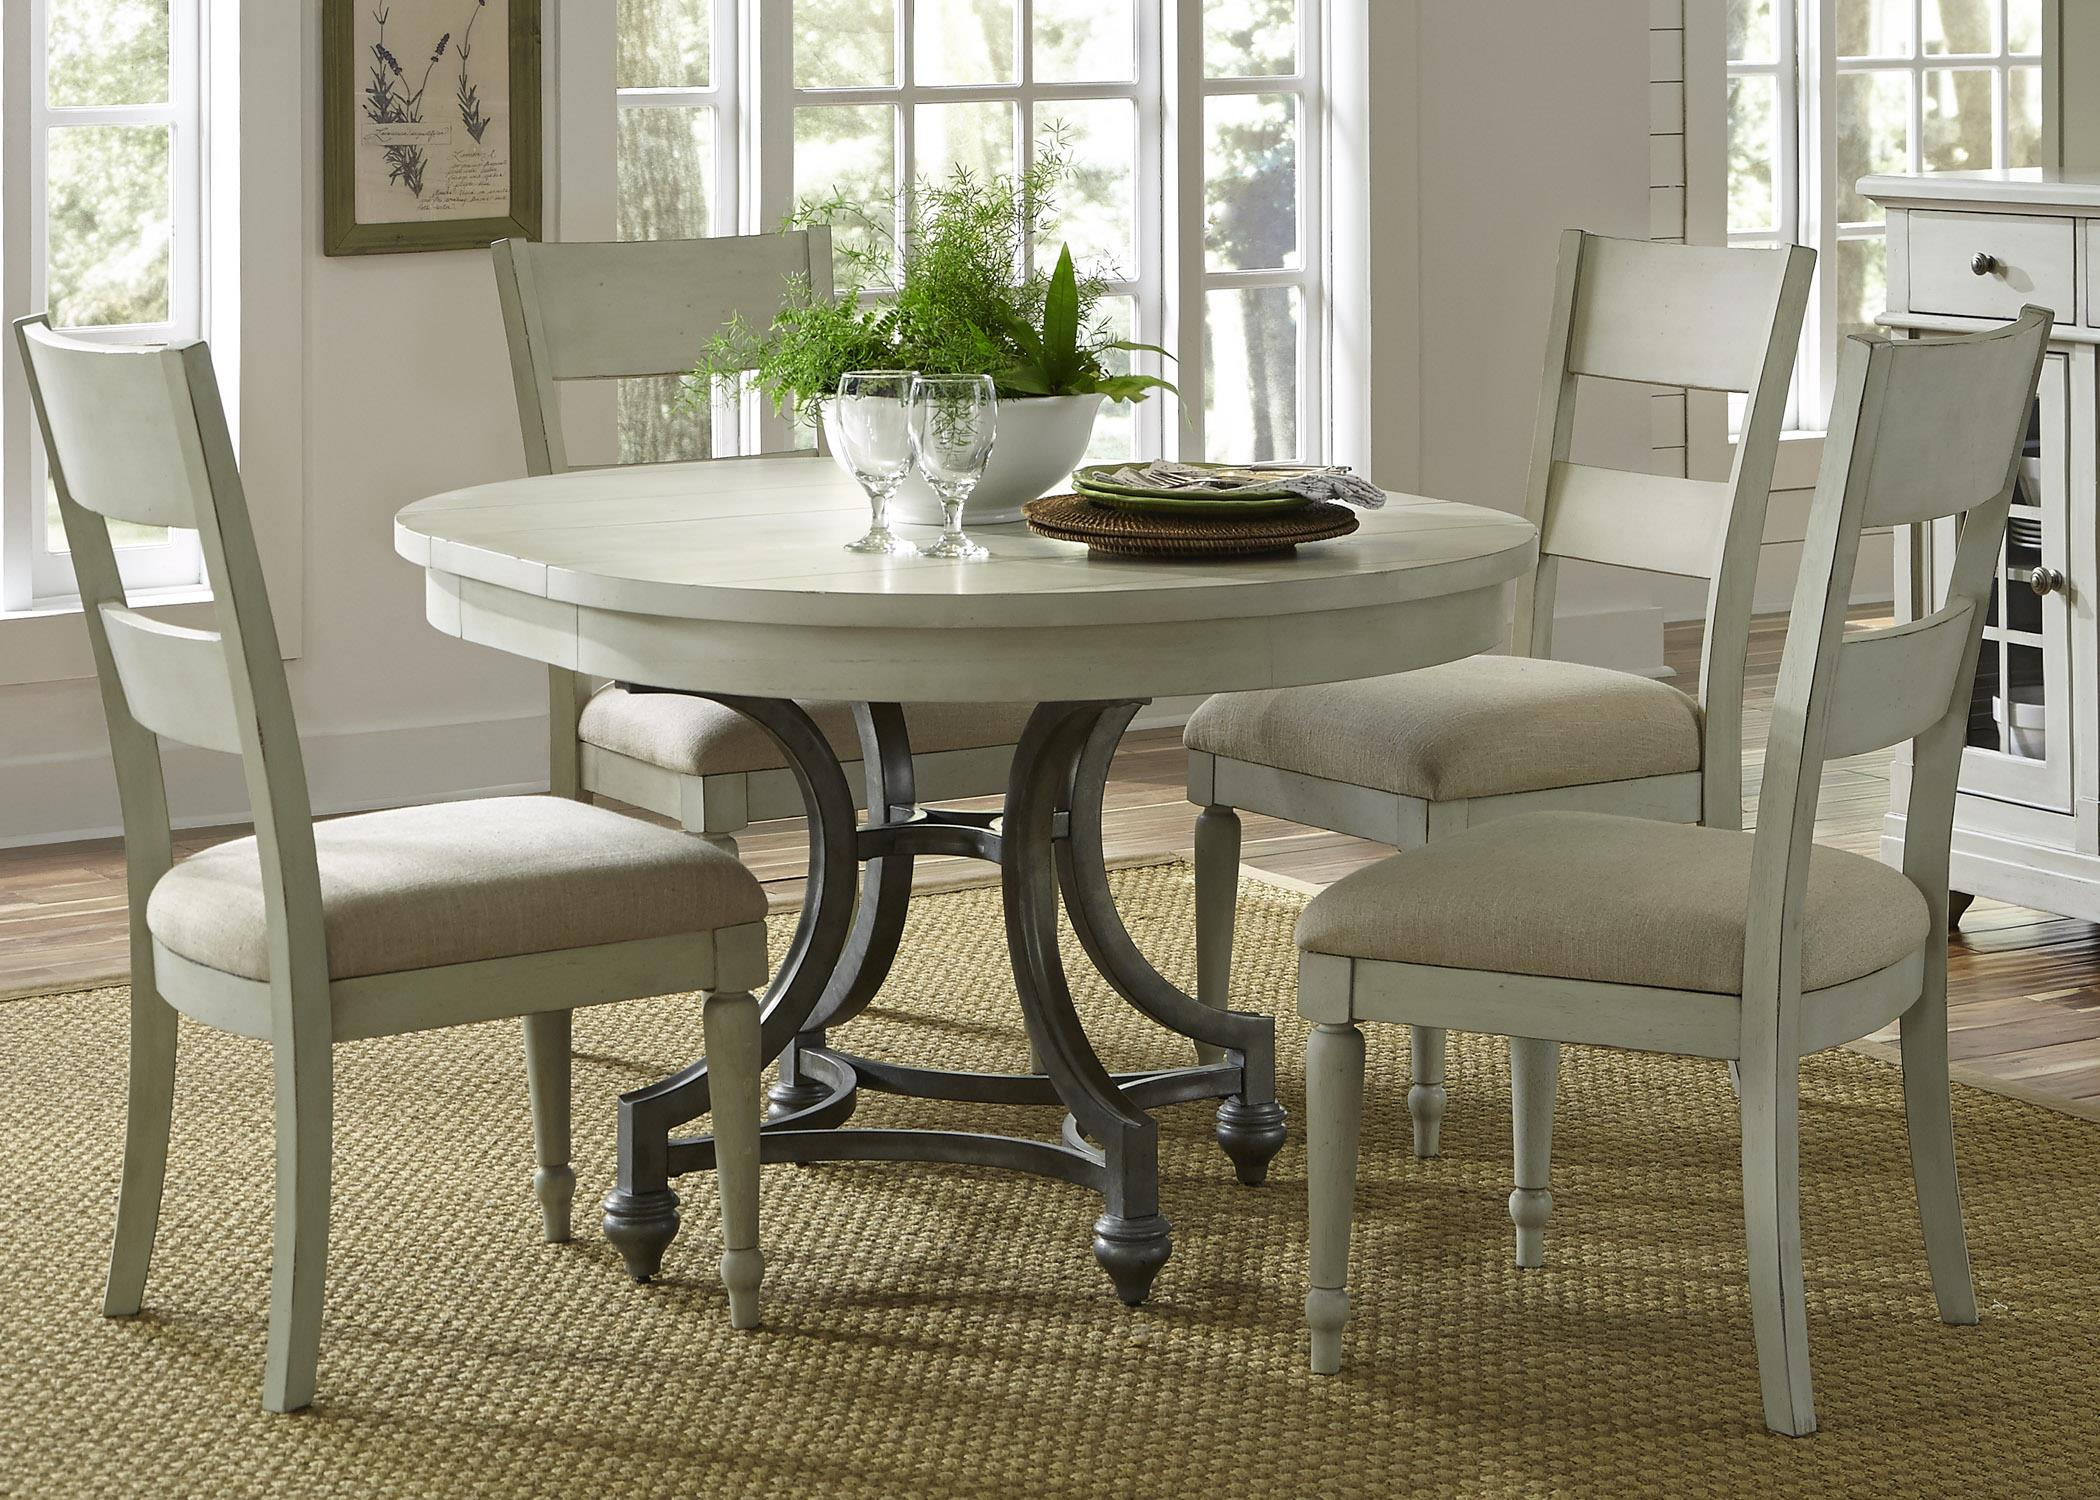 Charmant Round Table And Chair Set